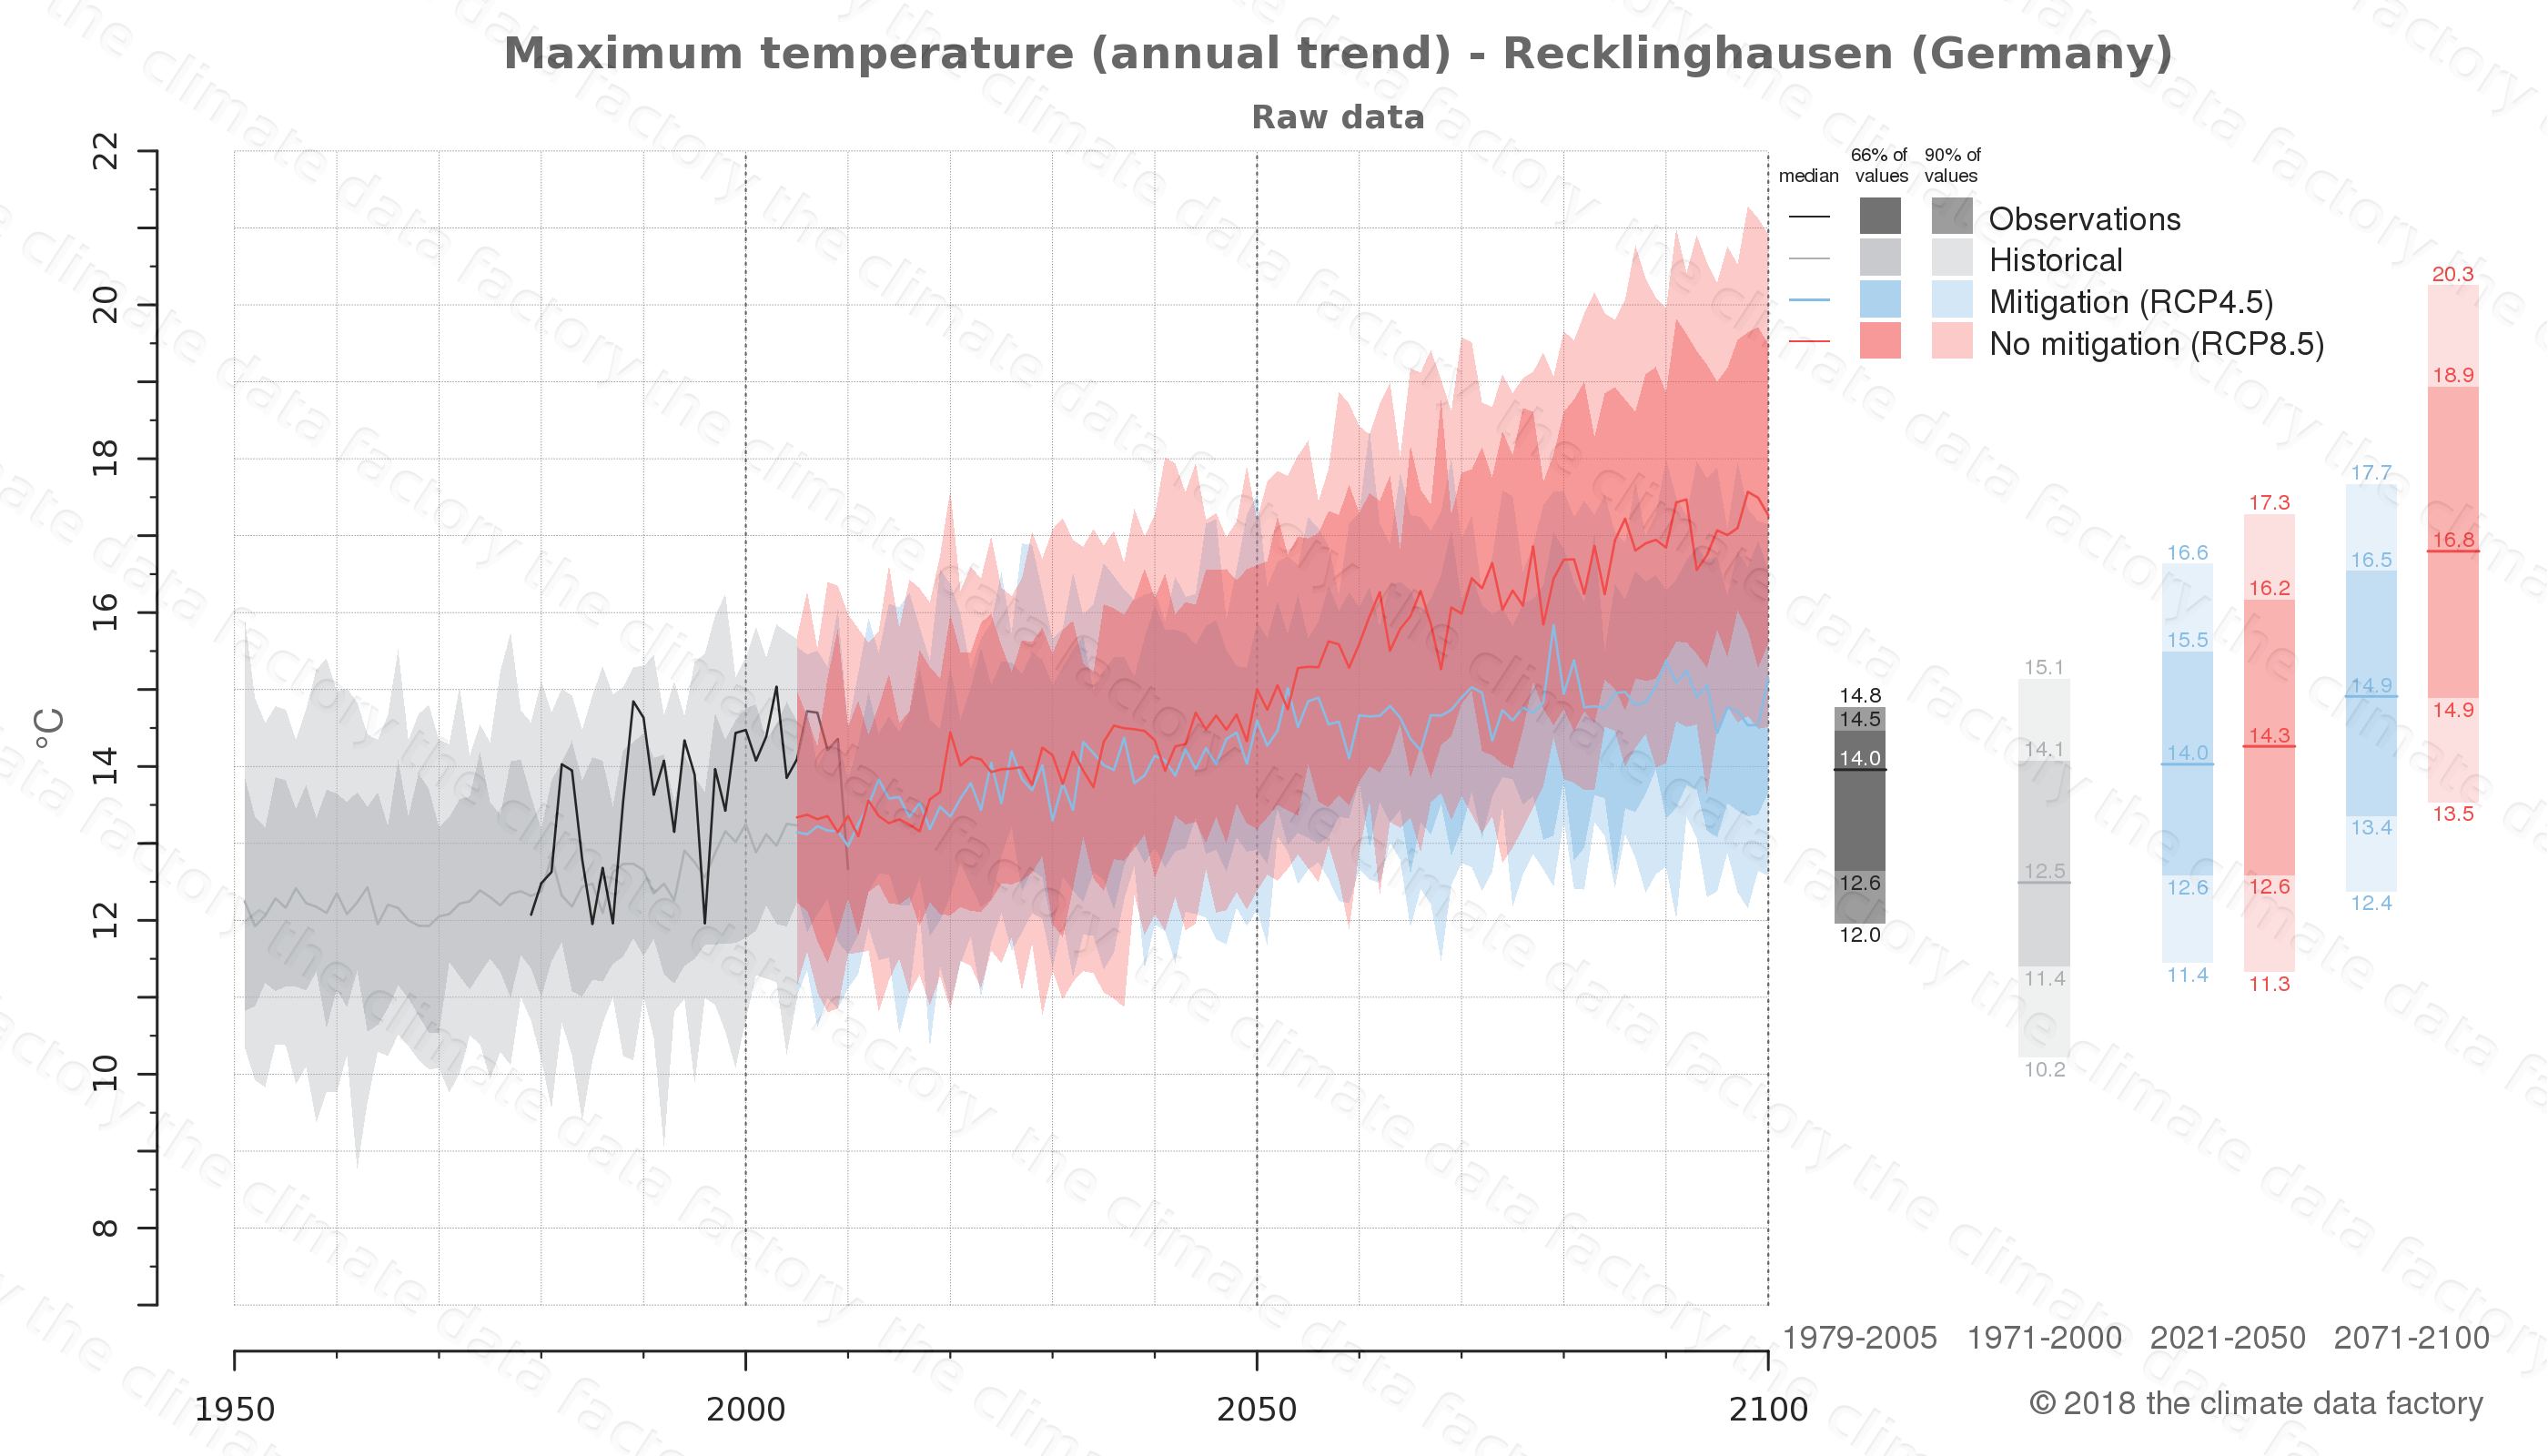 climate change data policy adaptation climate graph city data maximum-temperature recklinghausen germany